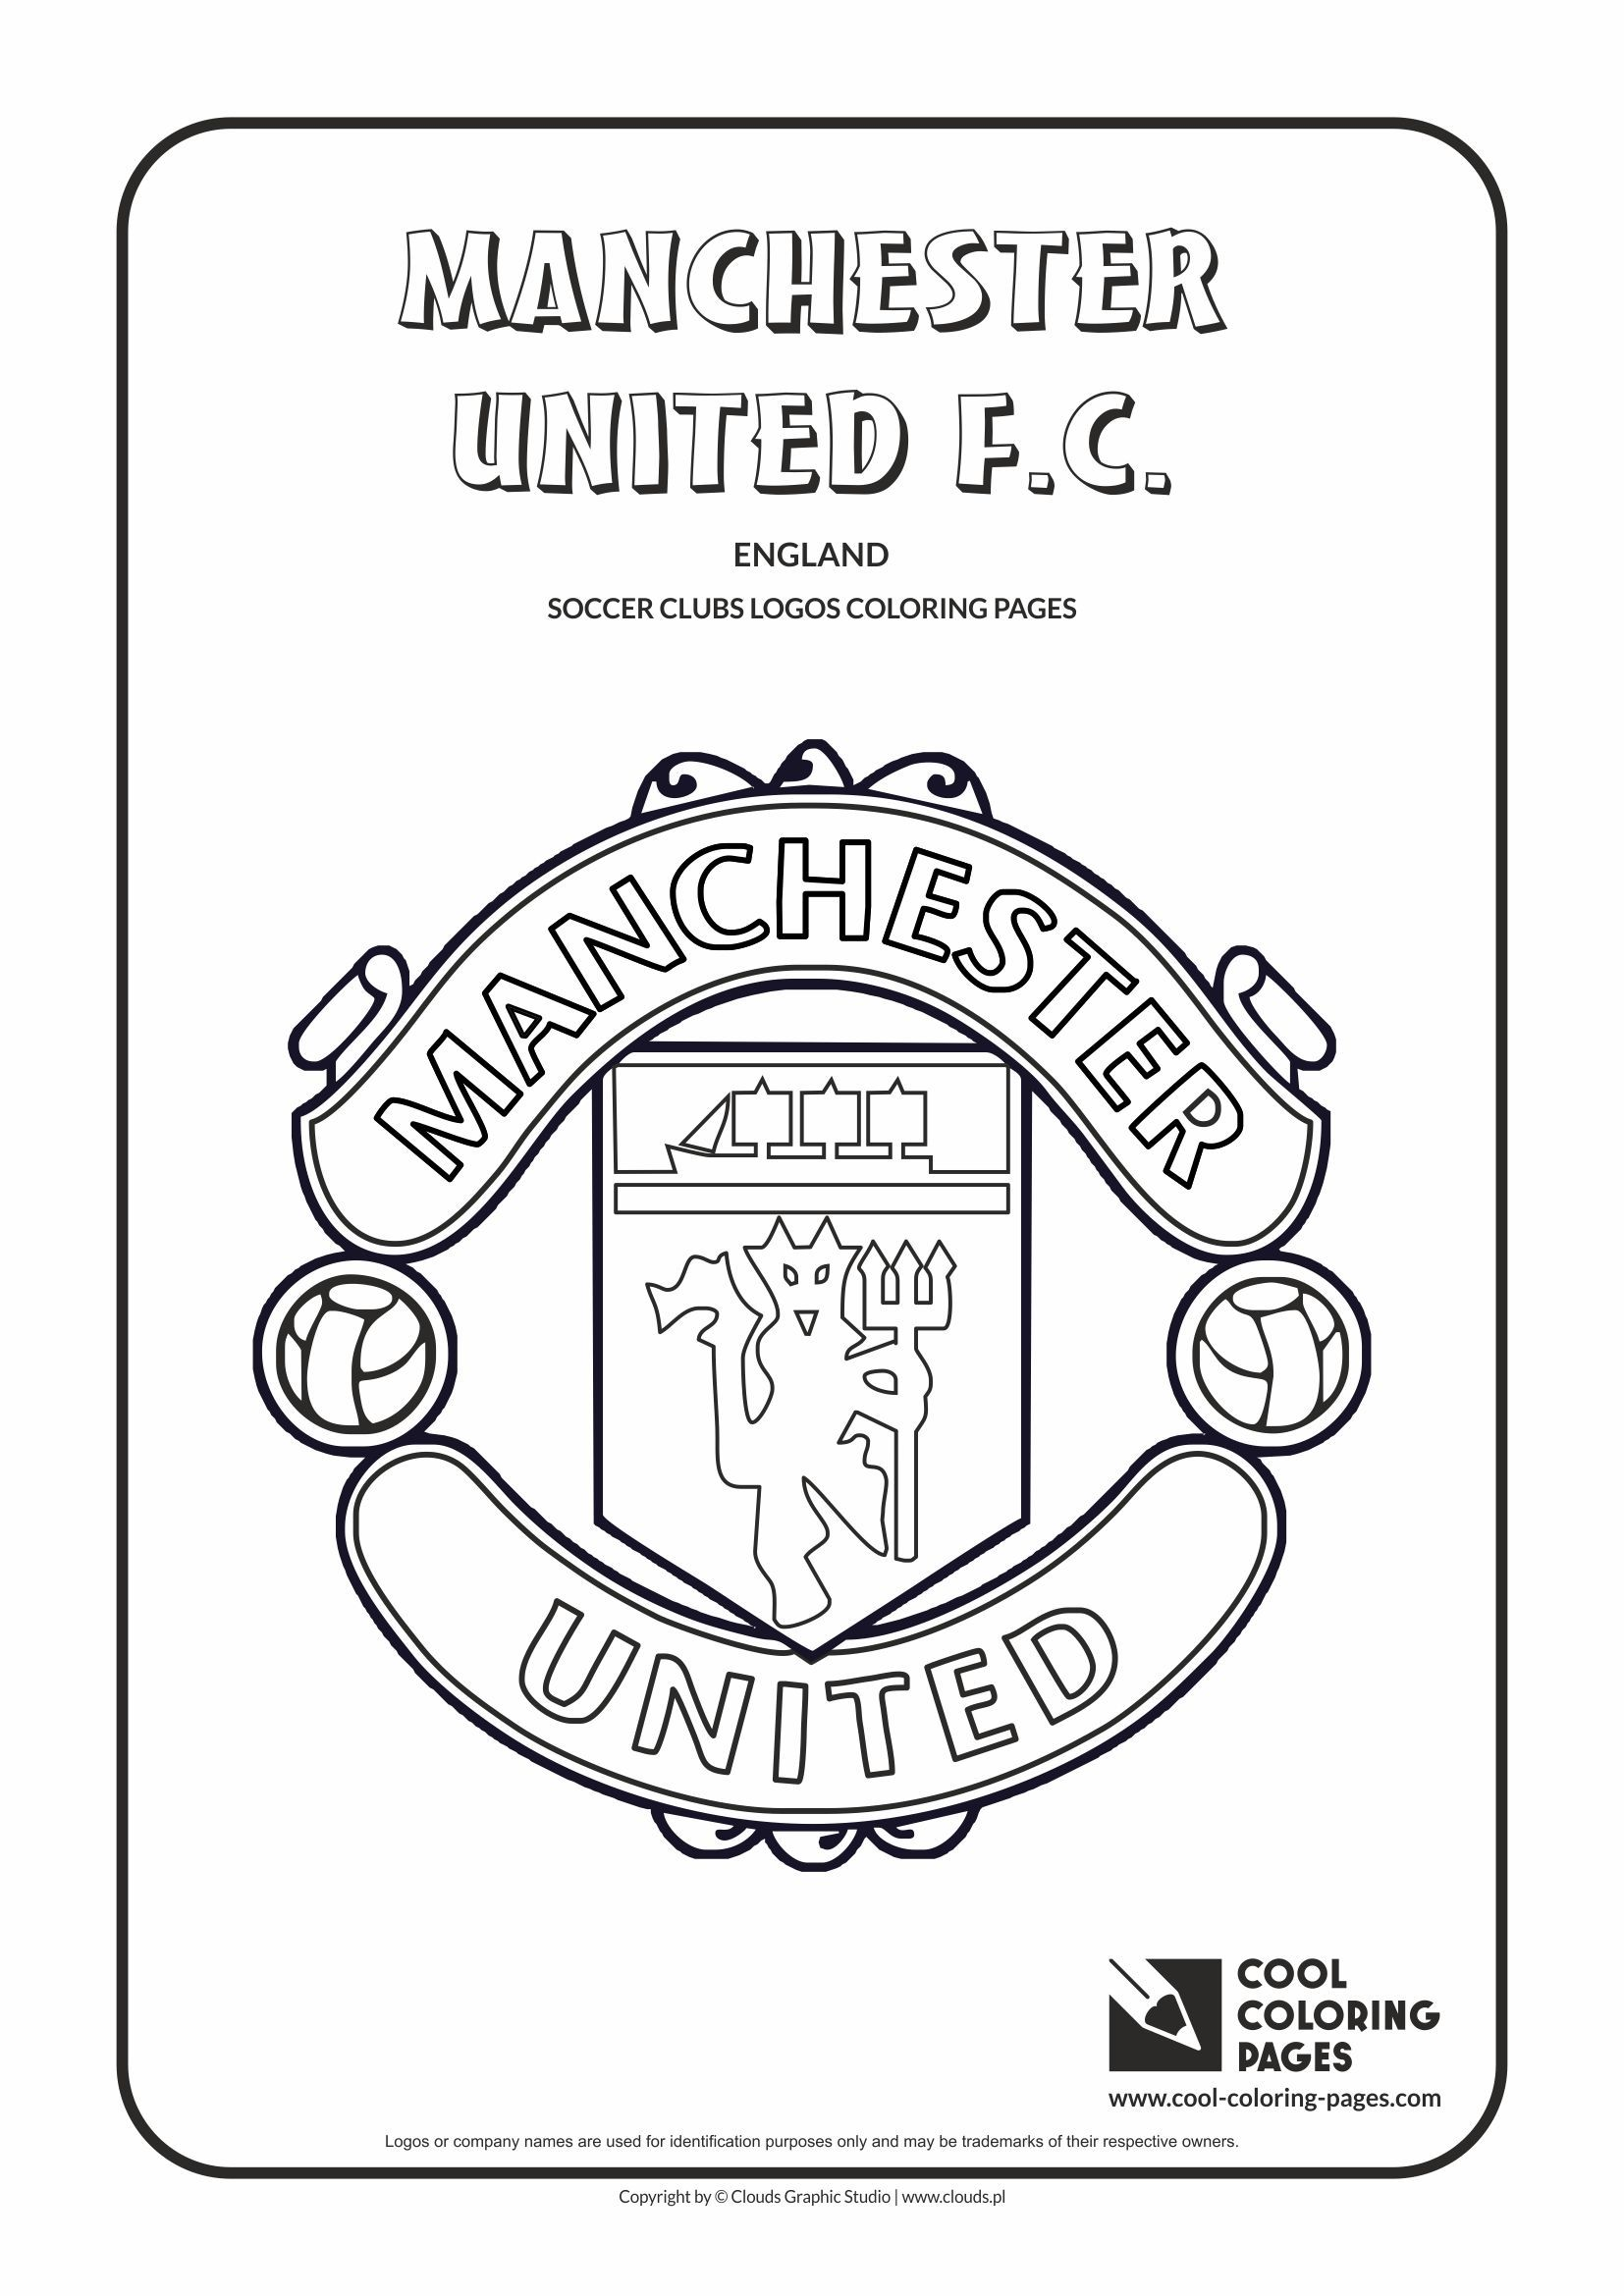 Uncategorized Coloring Pages Cool cool coloring pages soccer club logos manchester united f c logo page with